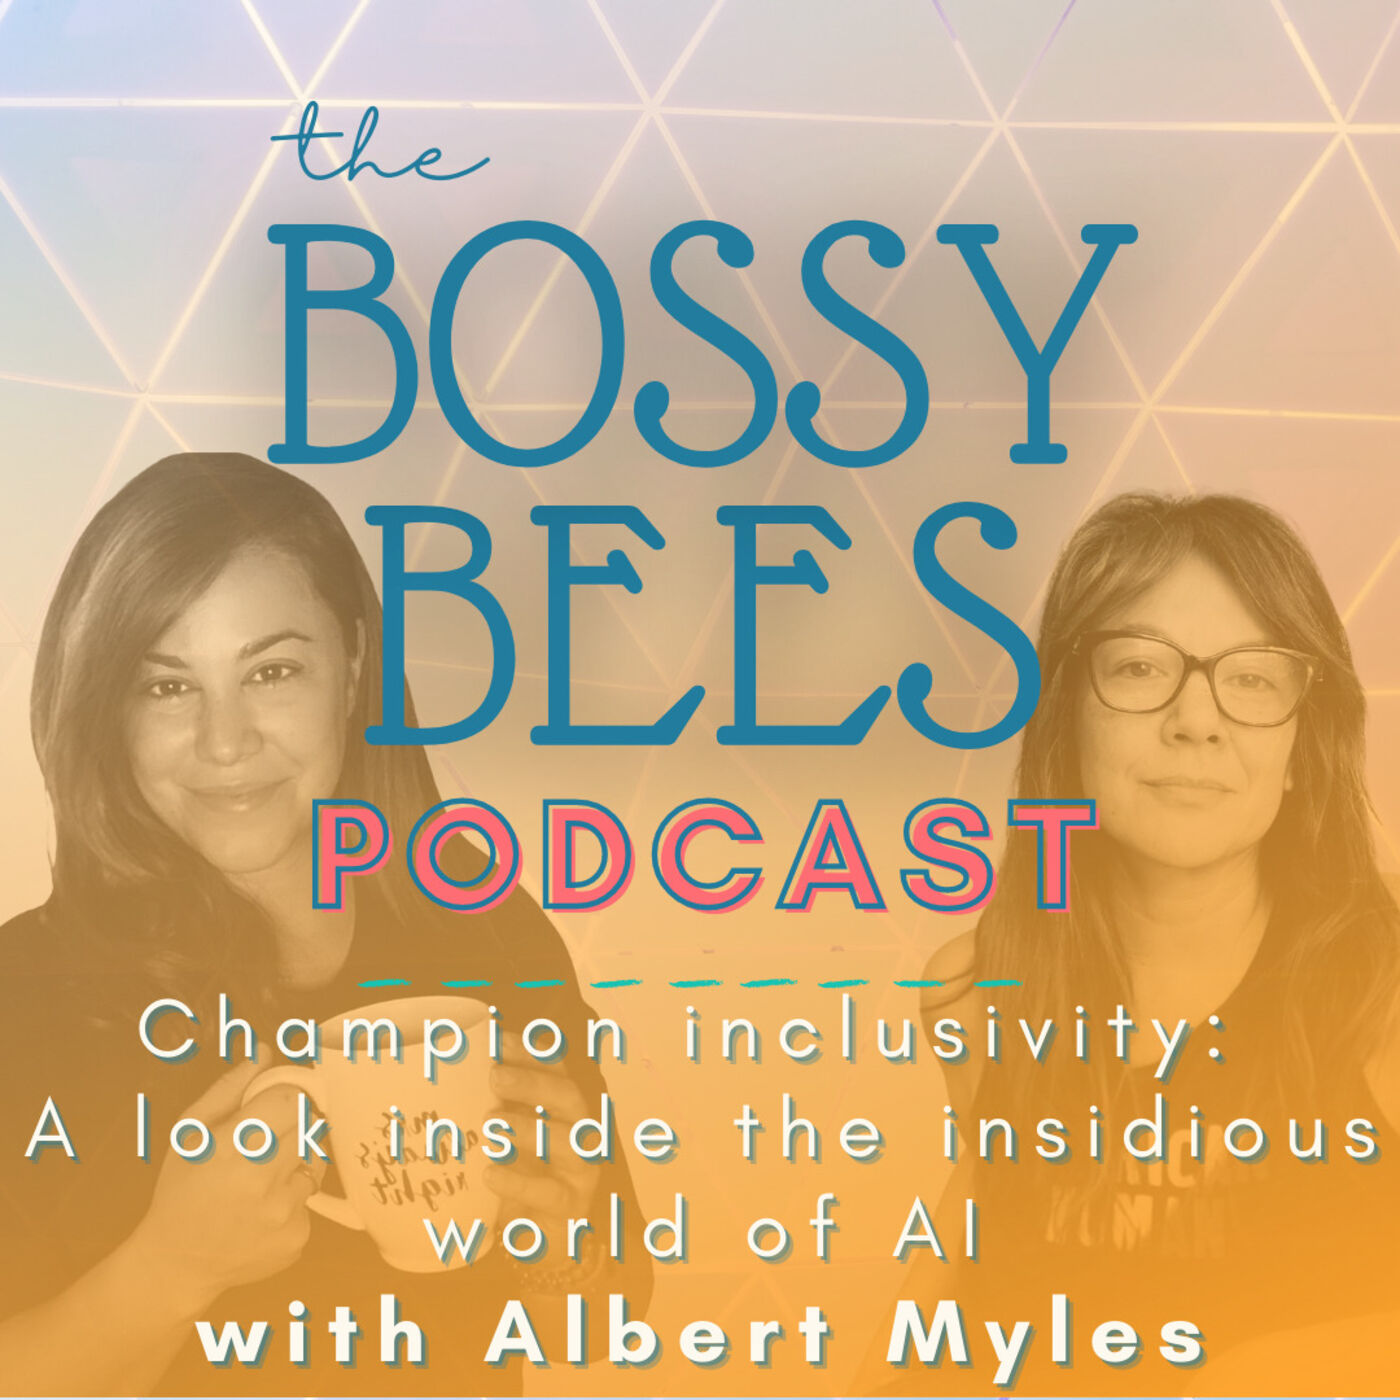 Champion inclusivity: A look inside the insidious world of AI with Albert Myles